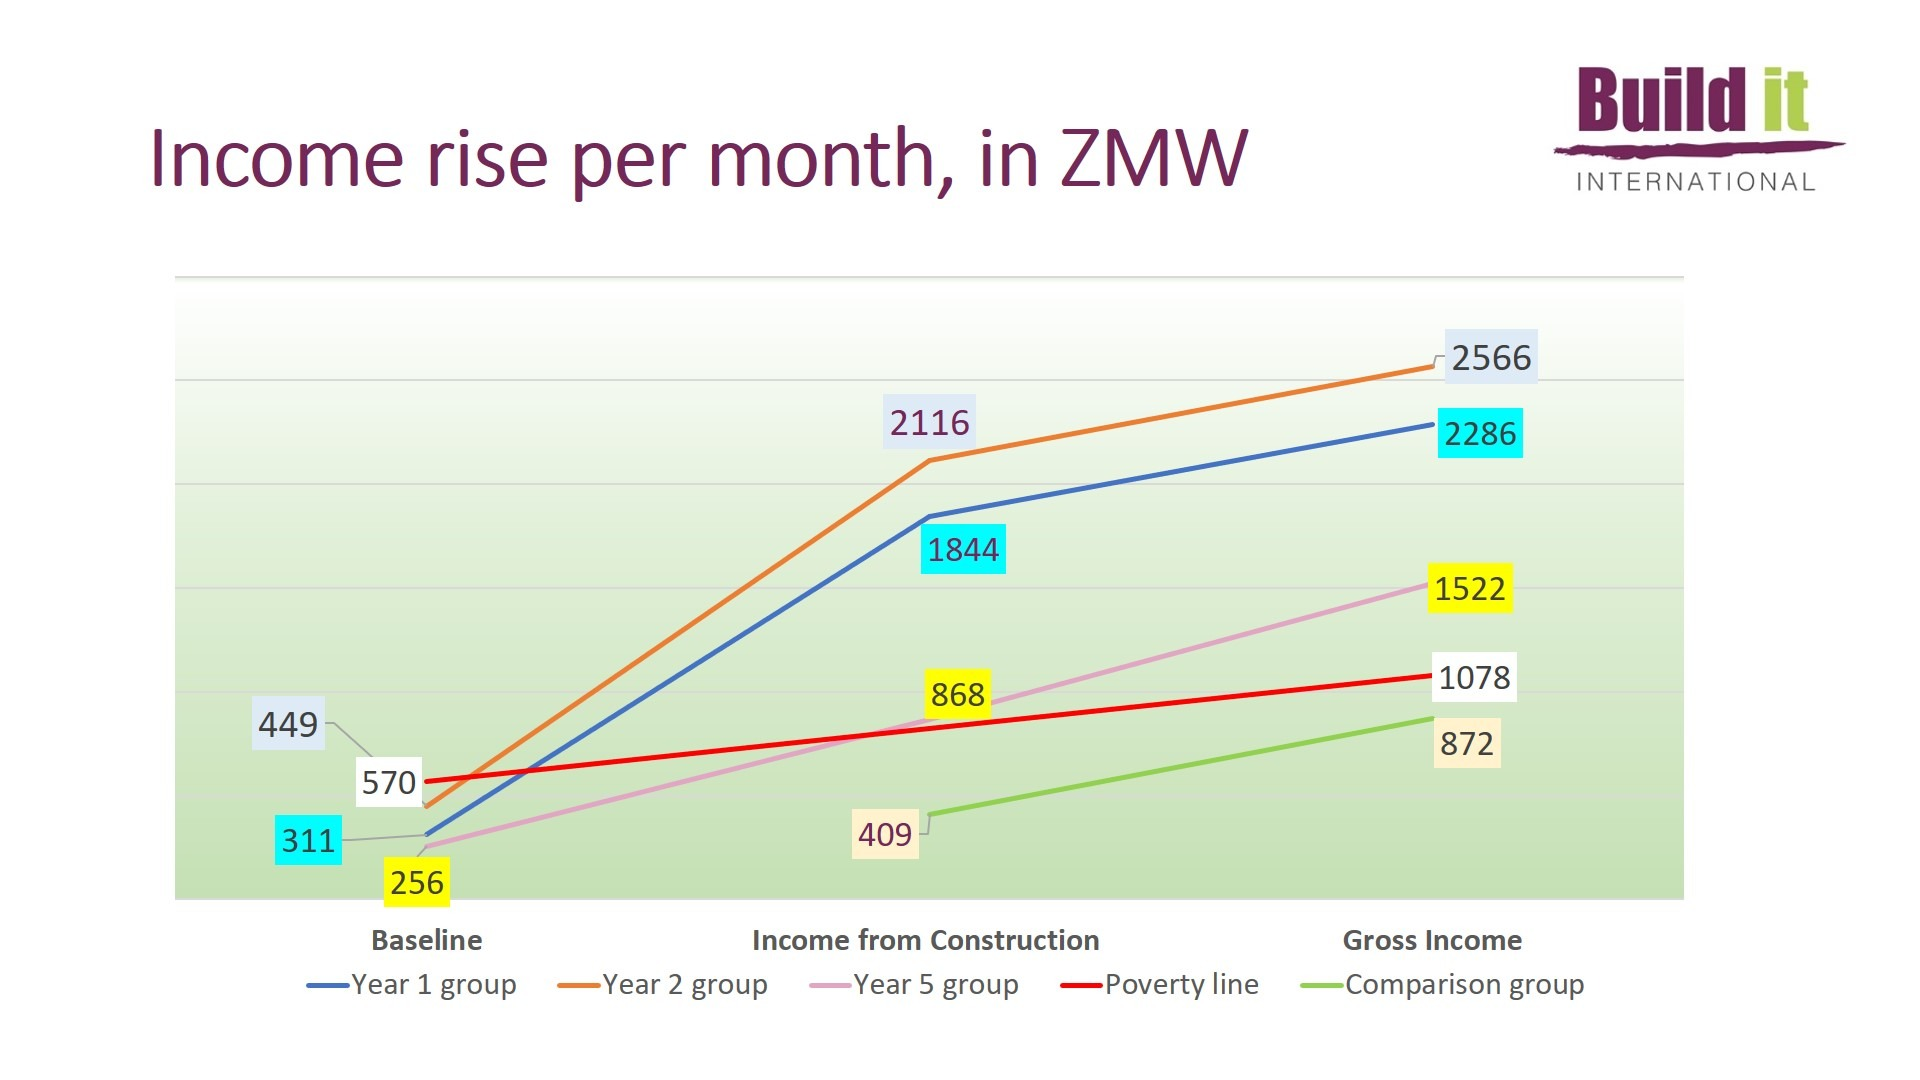 Line graph showing Income rise per month - 2020 Impact Study